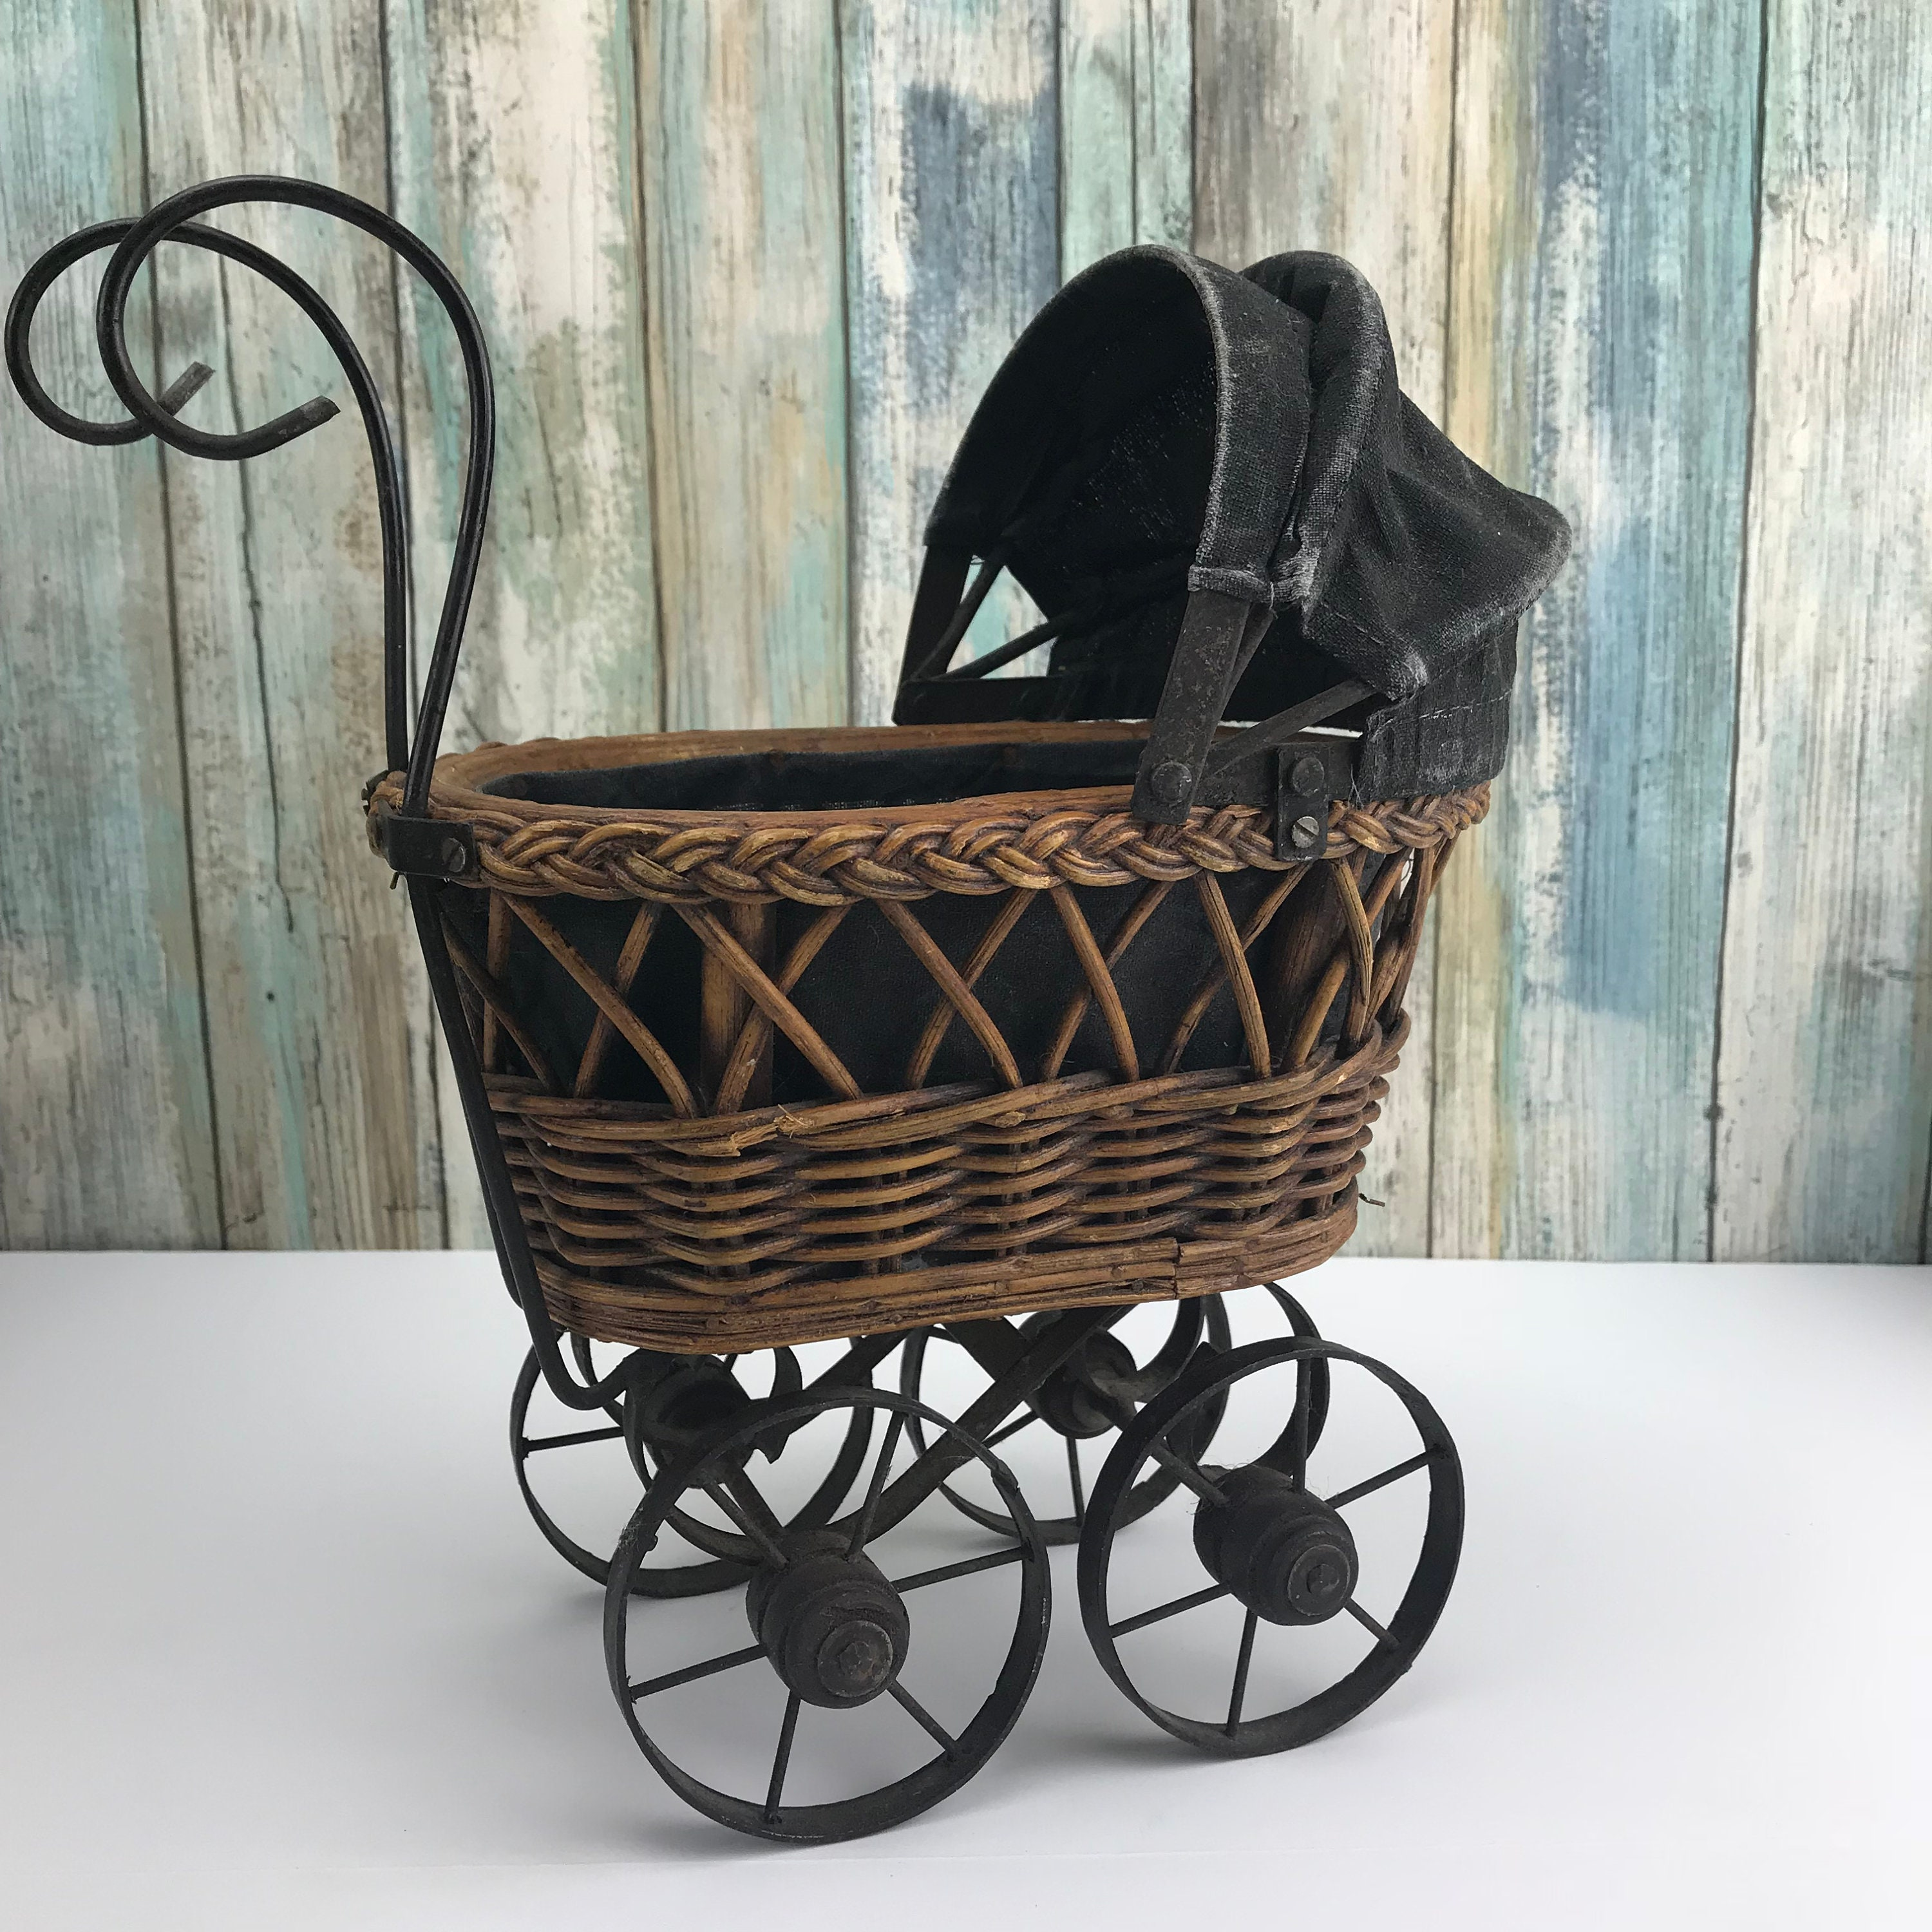 Vintage Wicker Amp Wrought Iron Mini Baby Buggy Basket W